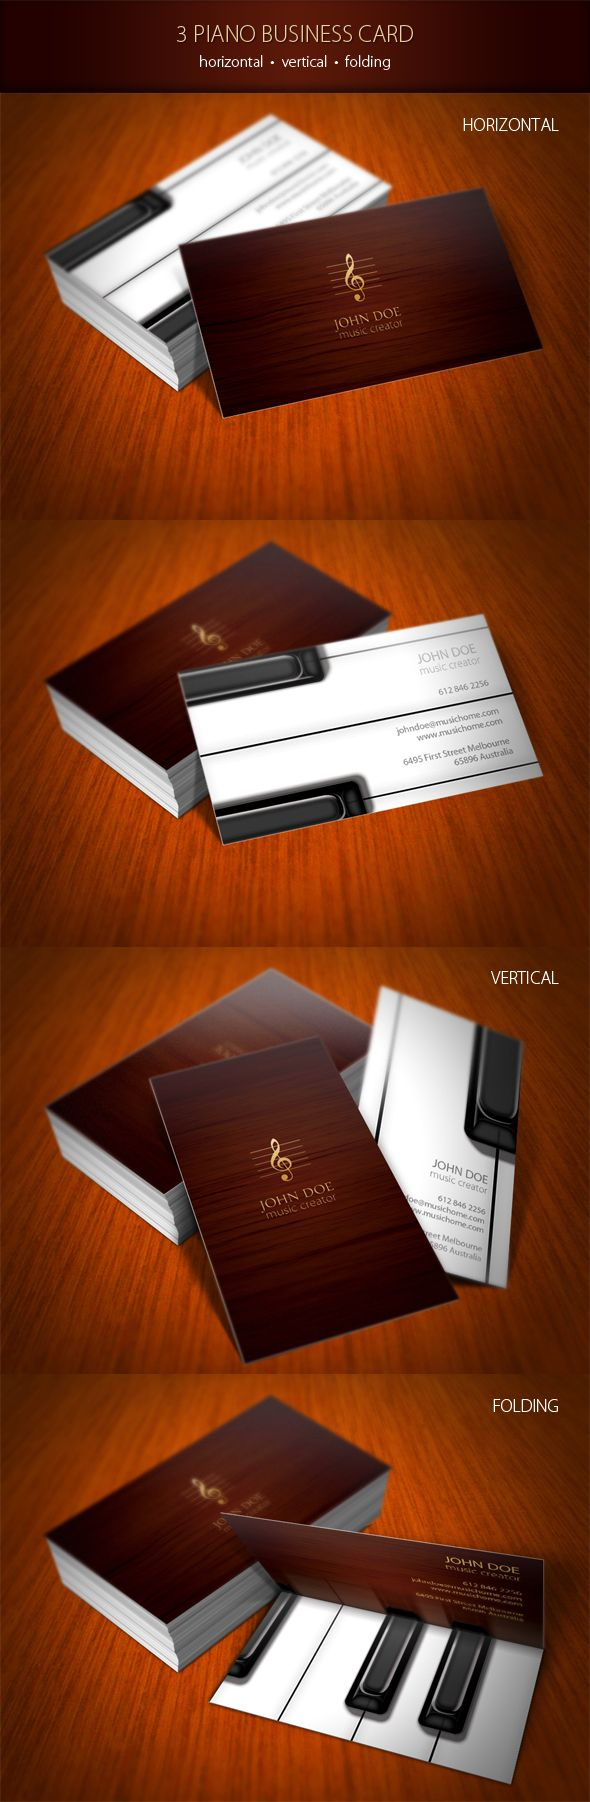 110 best business card images on pinterest business cards carte piano business card business card letterpress creative paper businesscard reheart